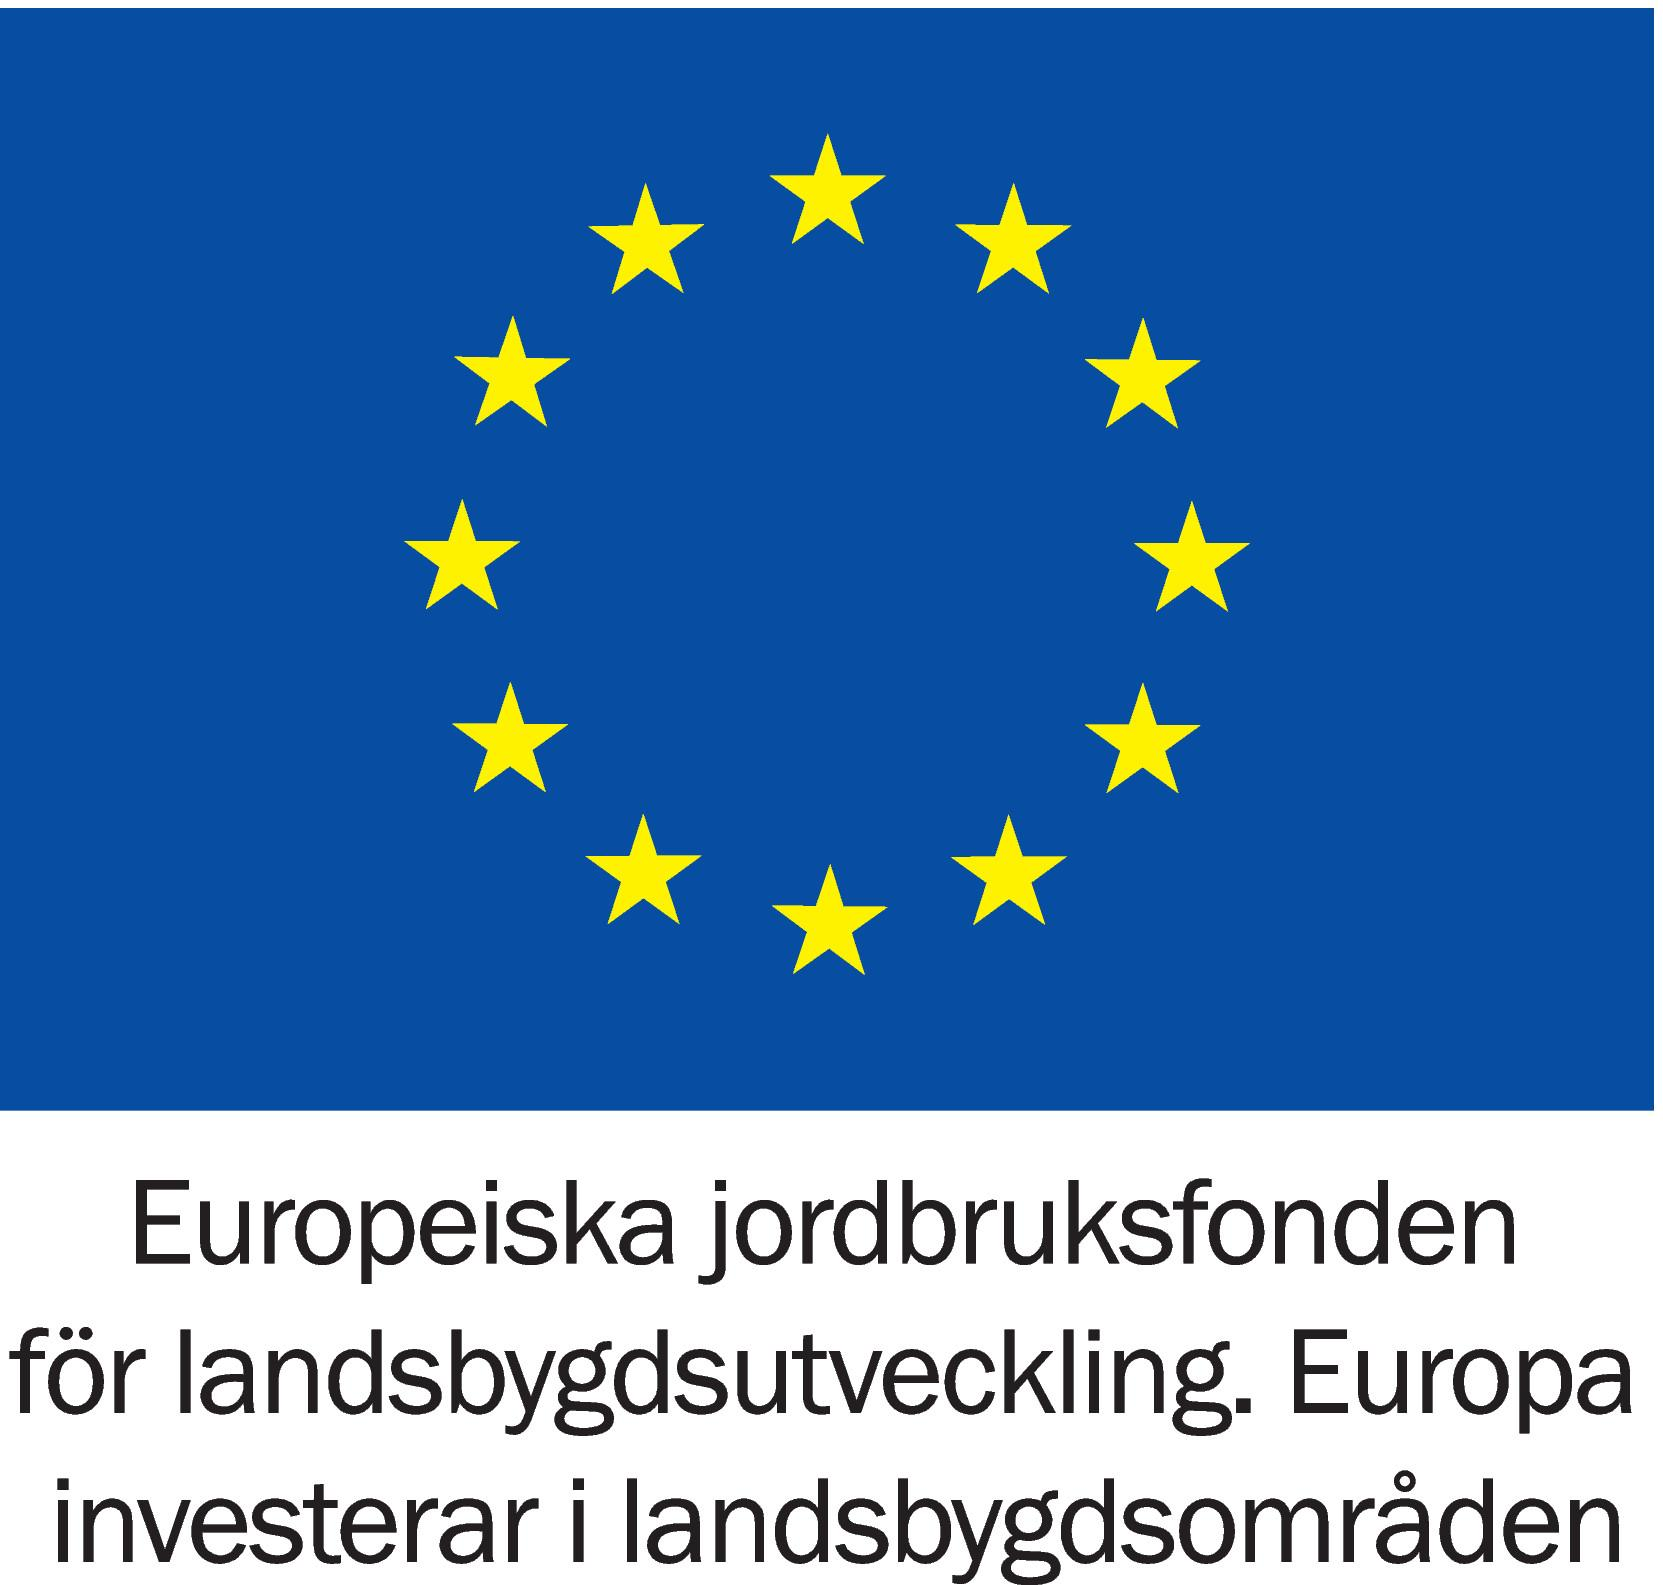 This project is finaced by The European Agricultural Fund for Rural Development: Europe investing in rural areas